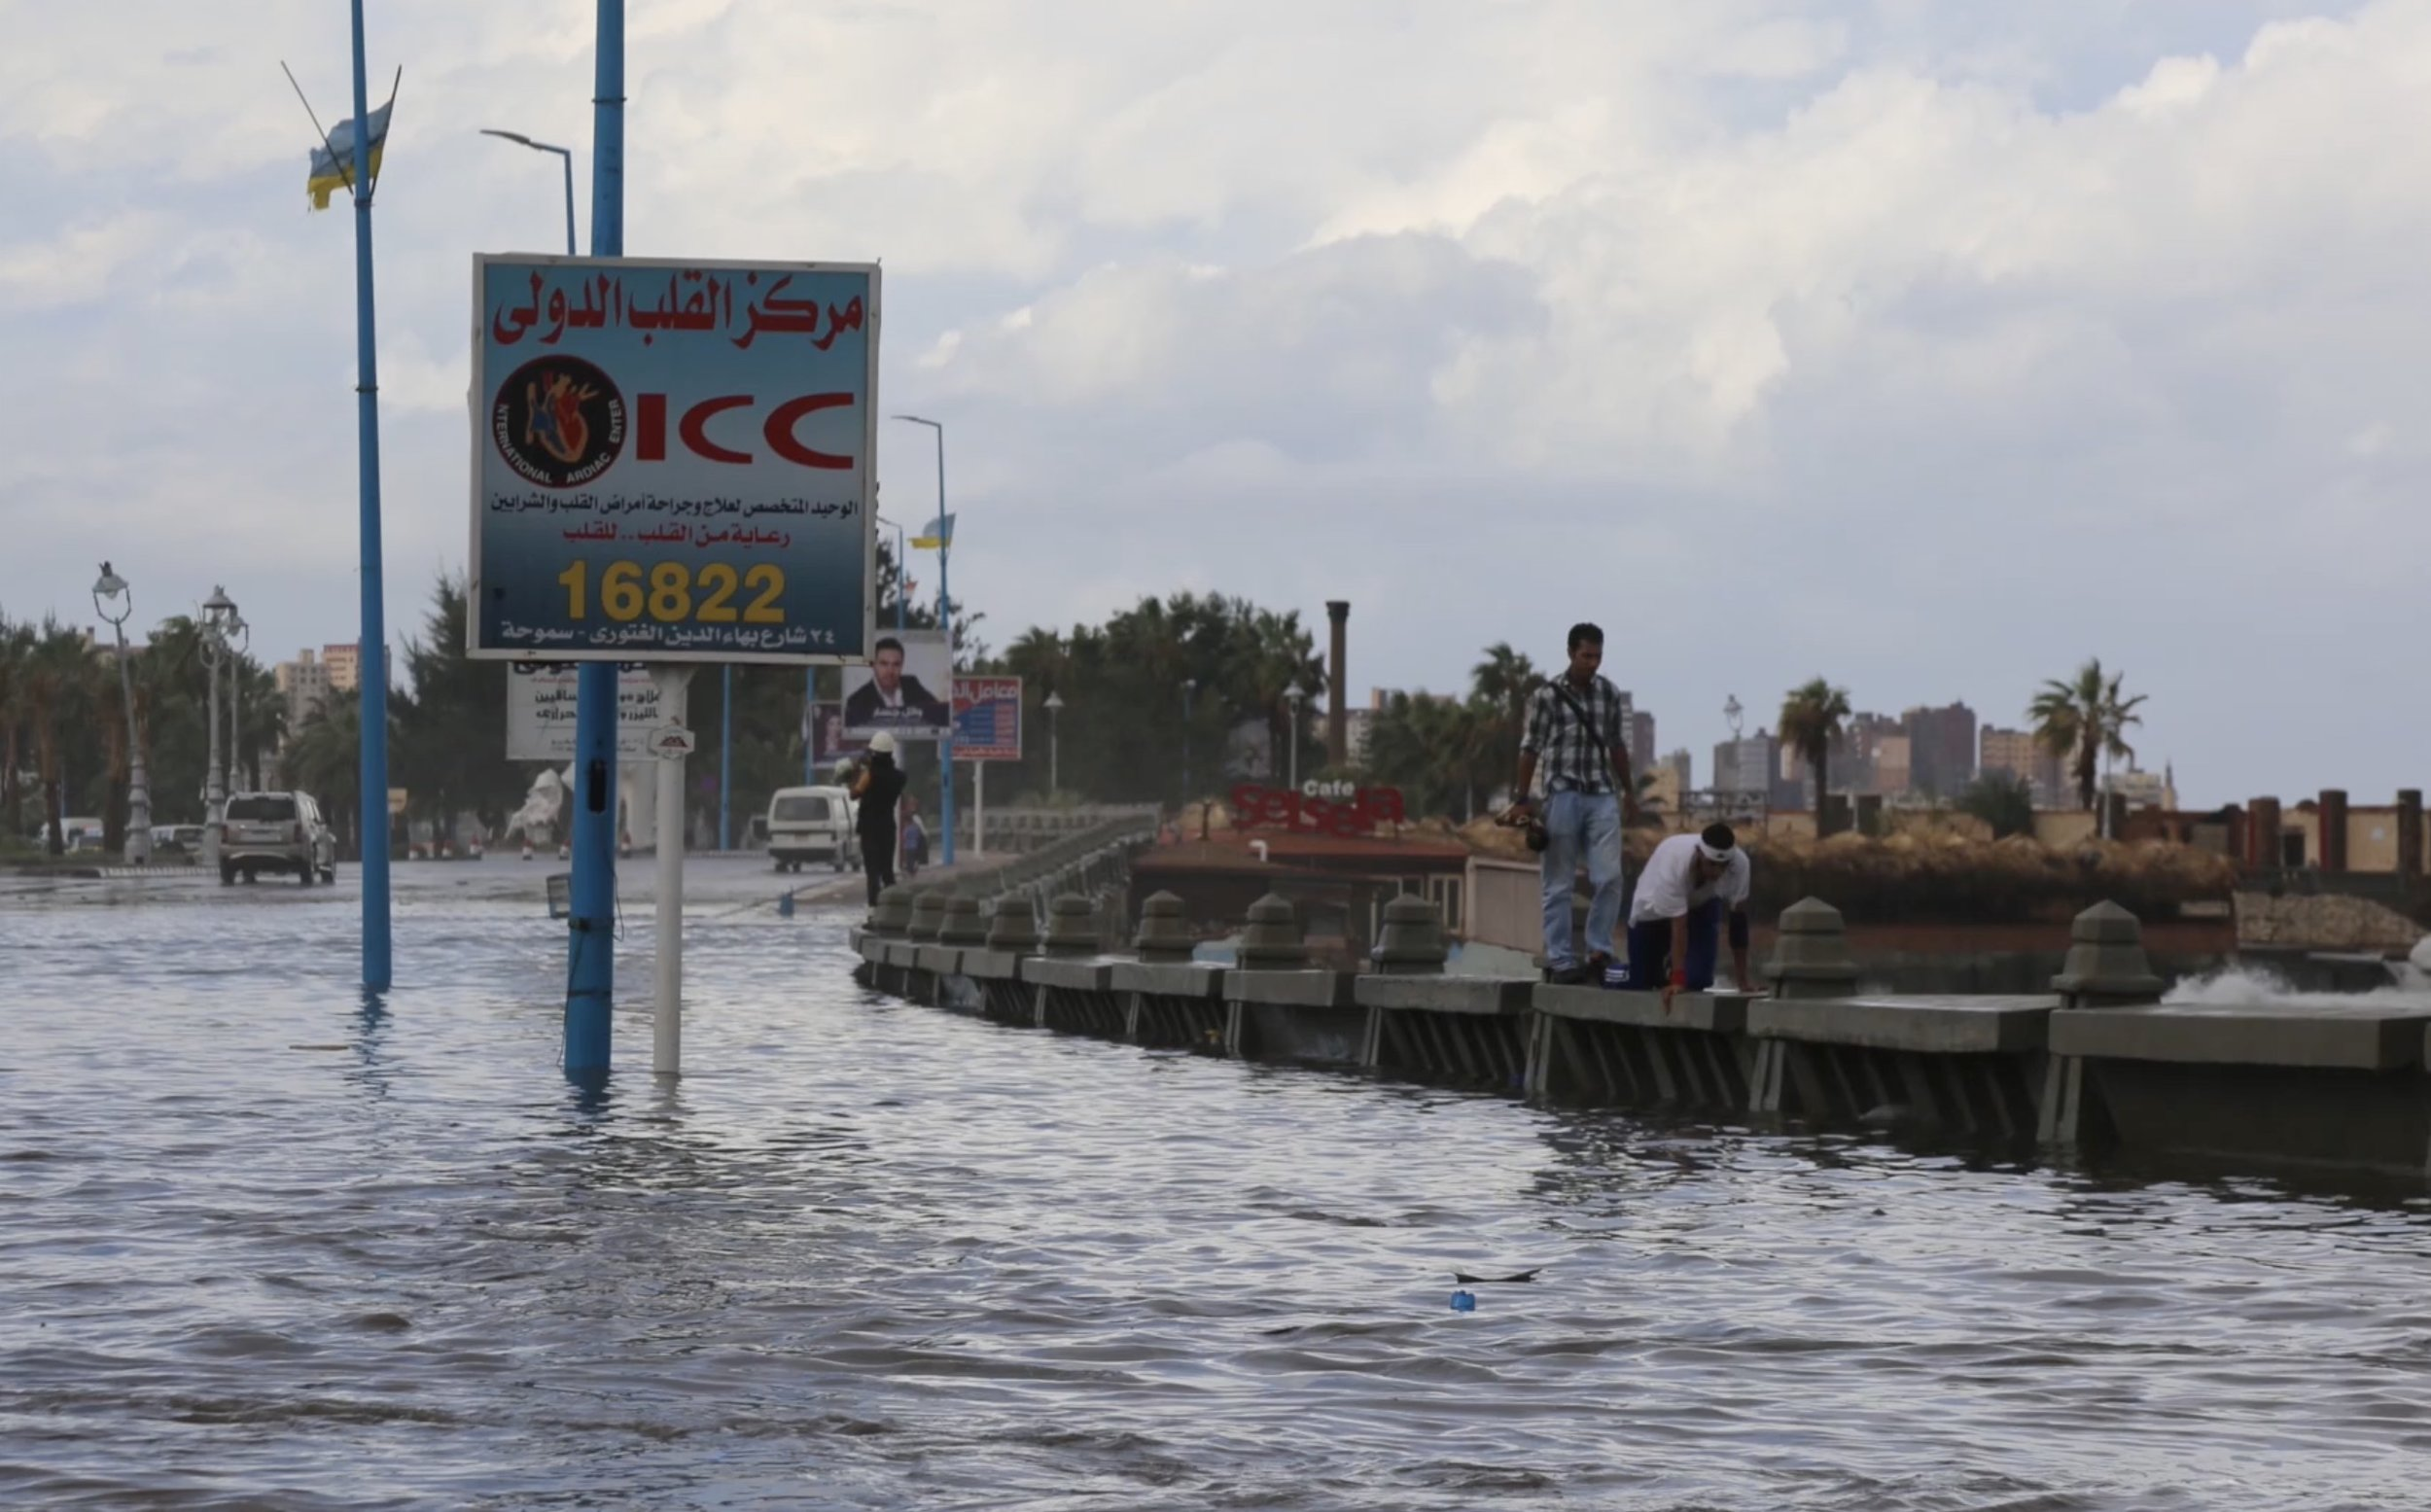 Extreme flooding event of October 2015 in Alexandria